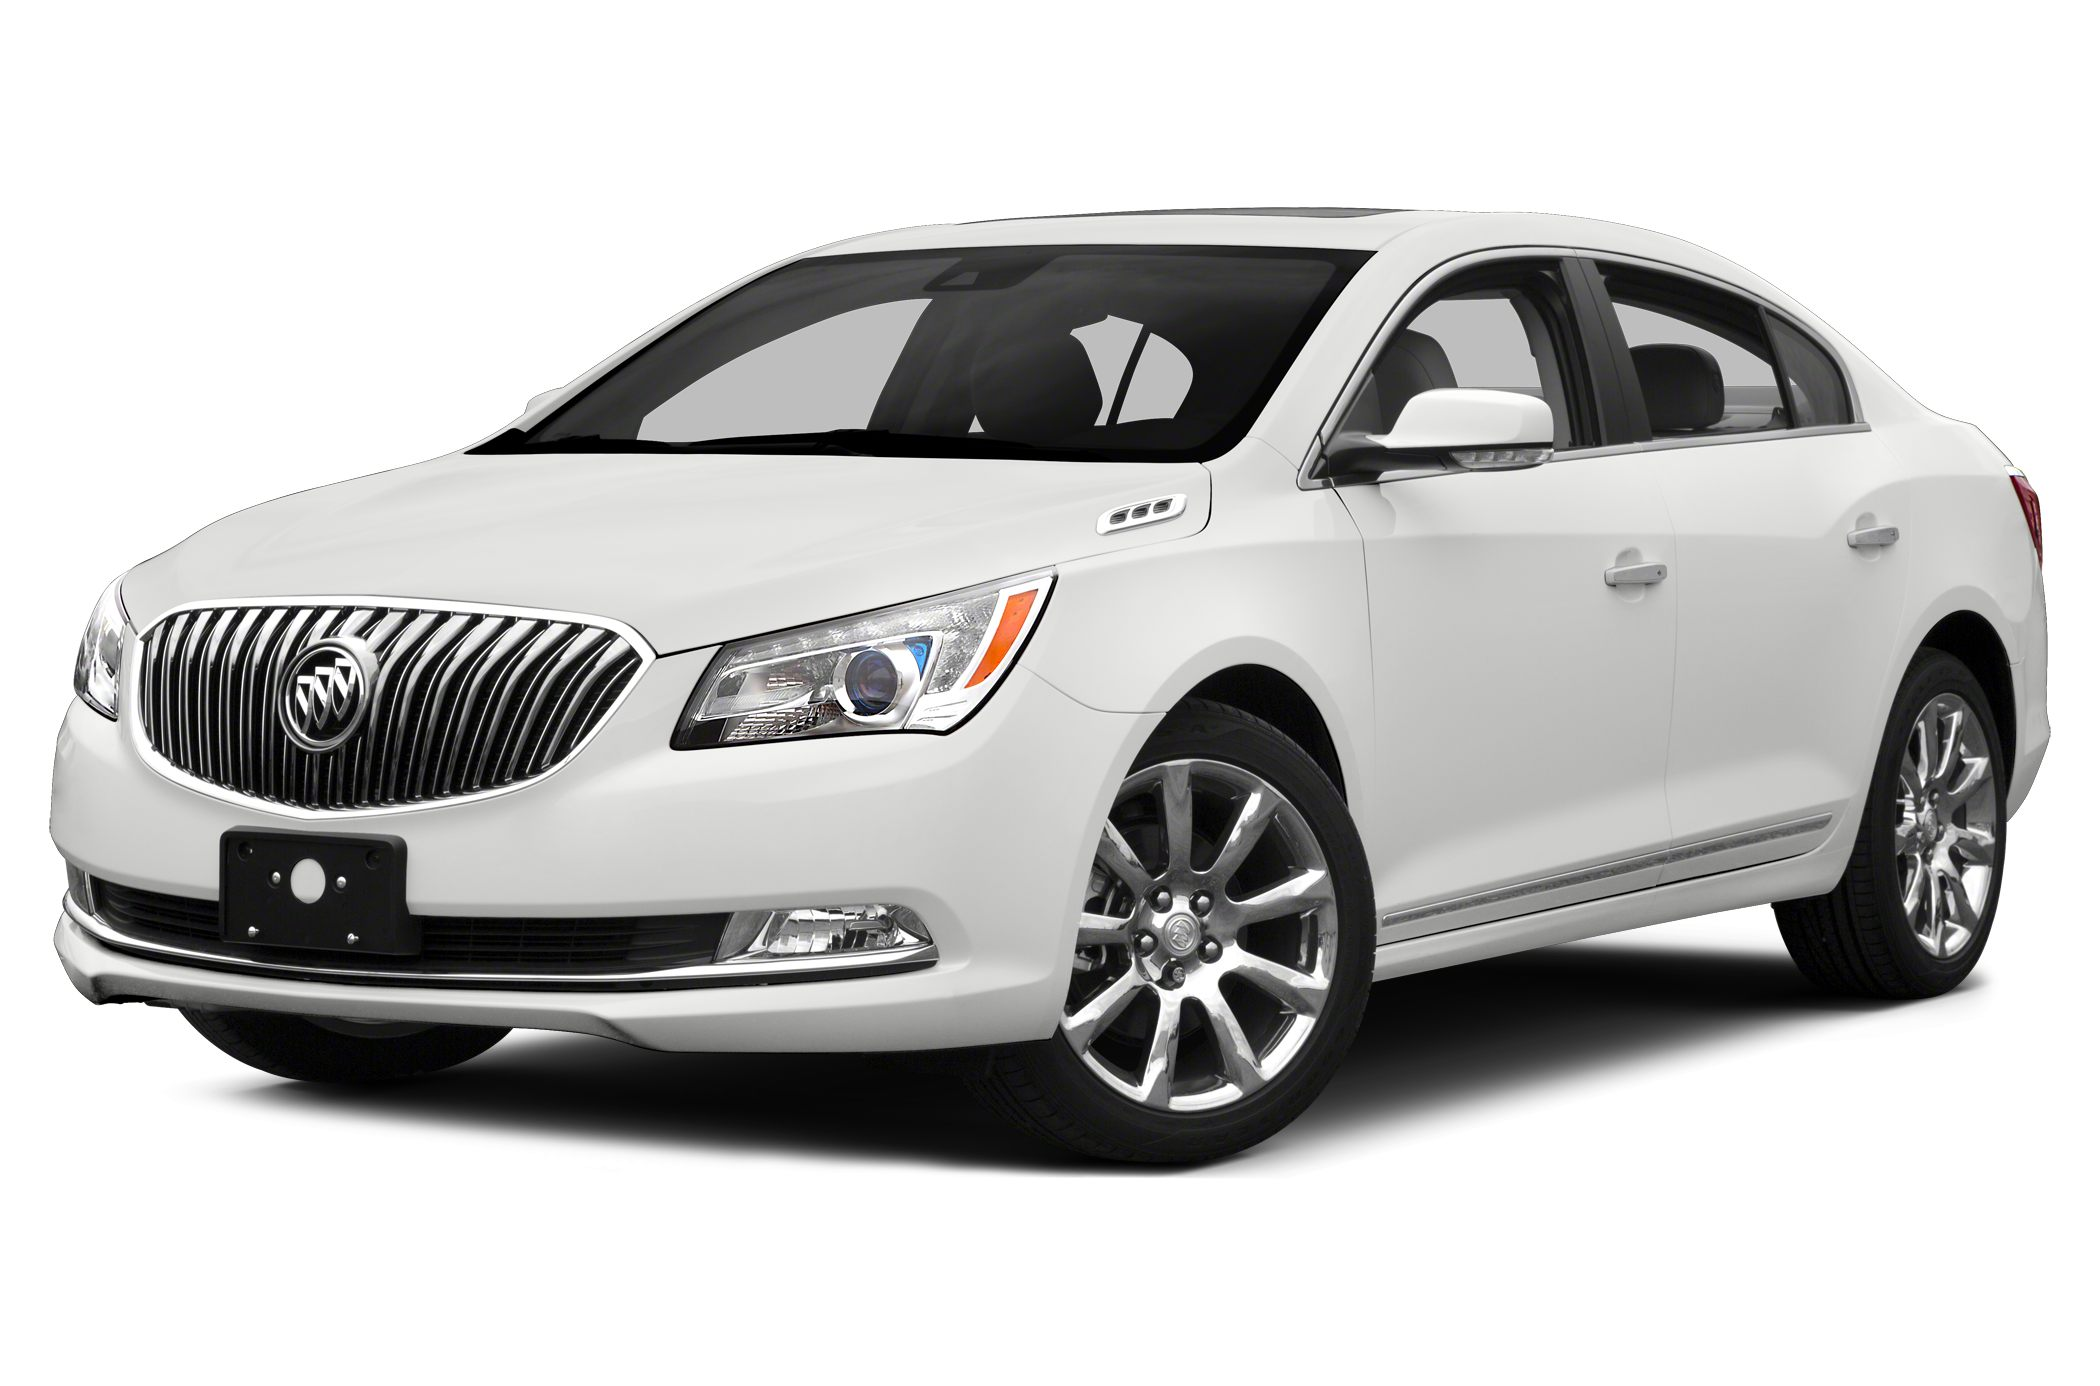 2015 Buick LaCrosse Leather Sedan for sale in Austin for $33,810 with 10 miles